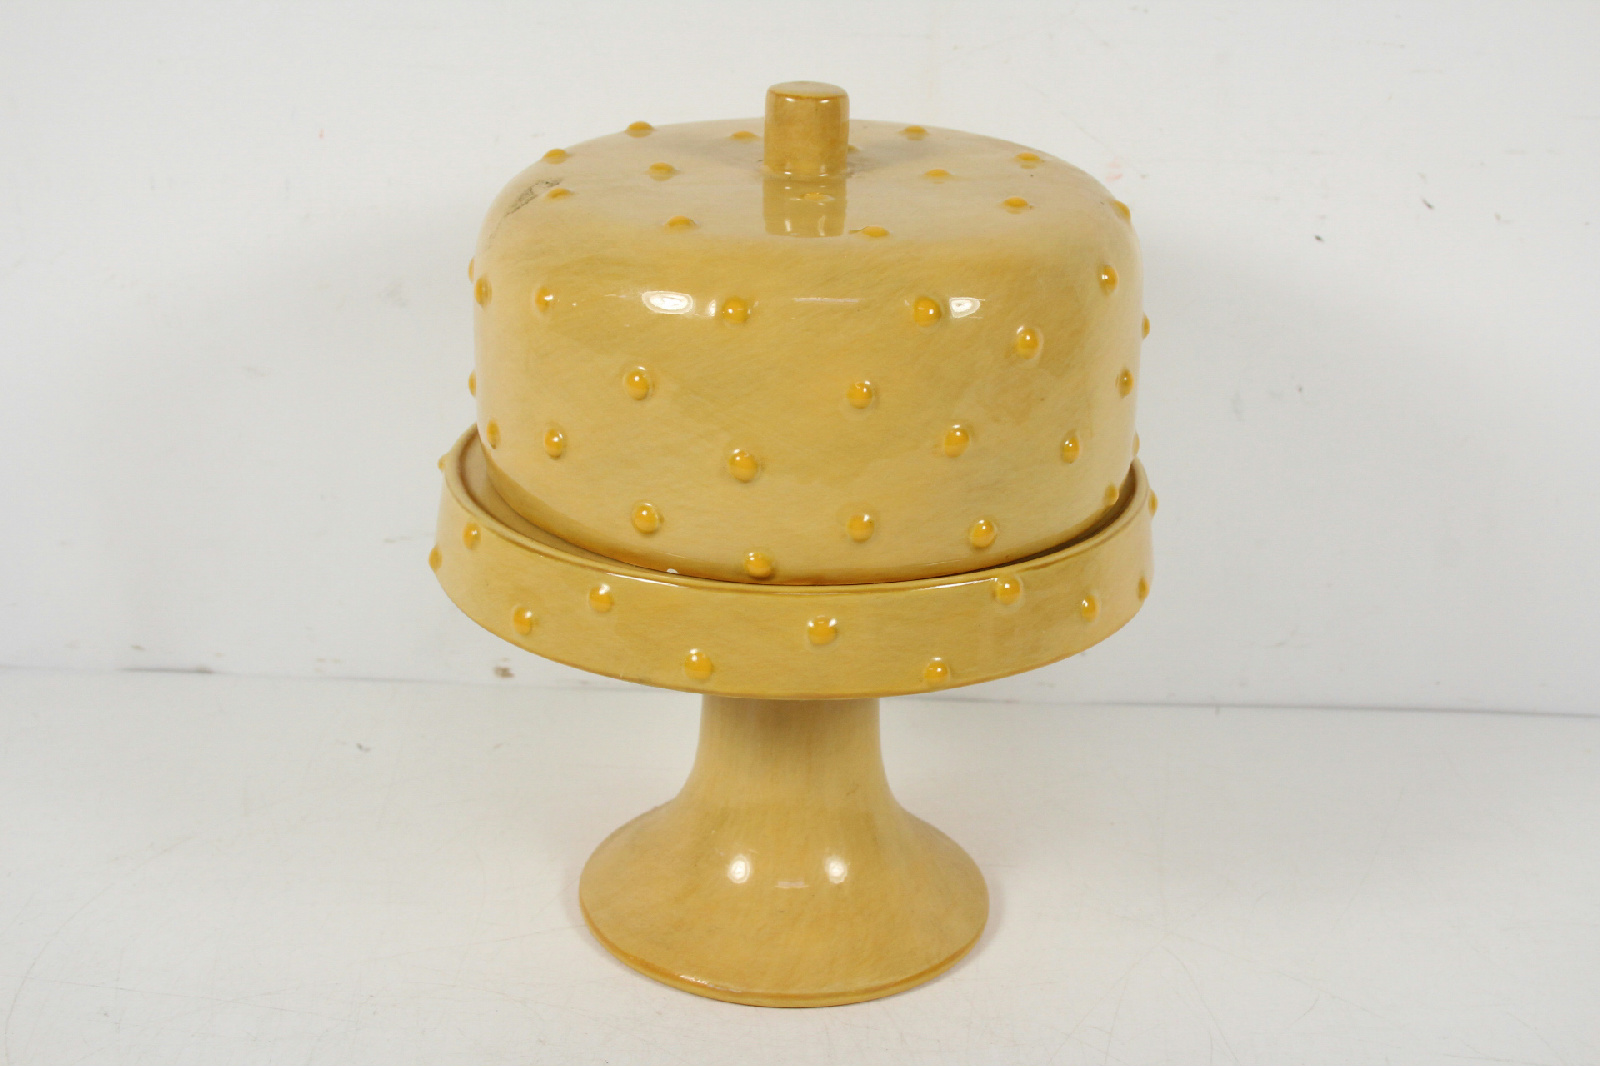 Cake Pedestal With Dome